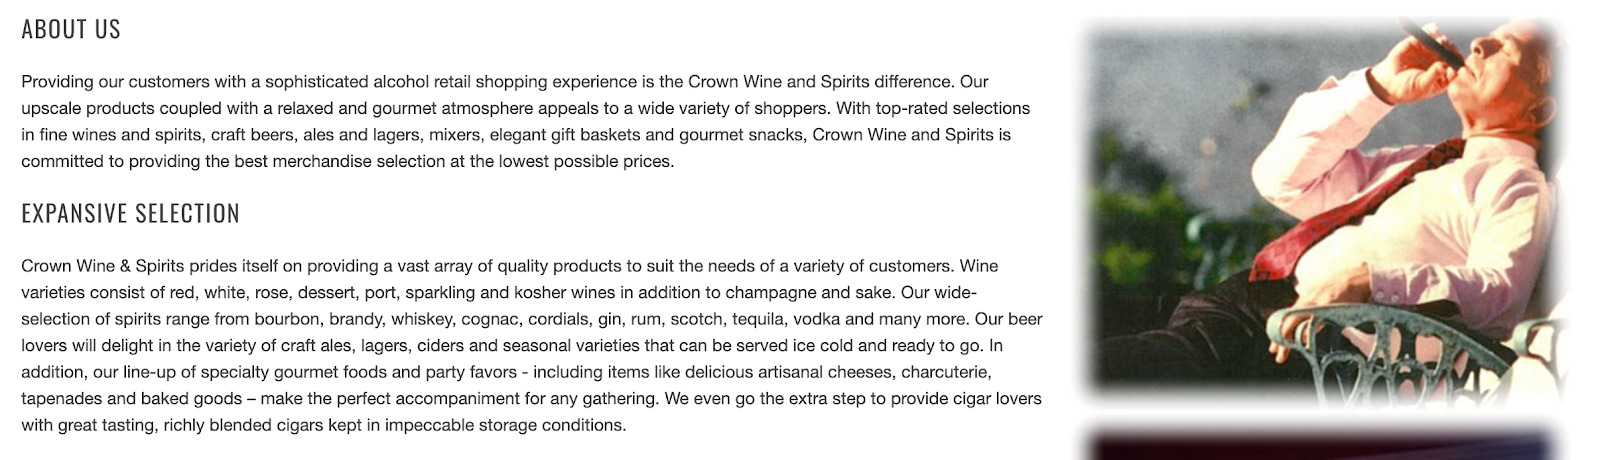 Crown Wine About us page